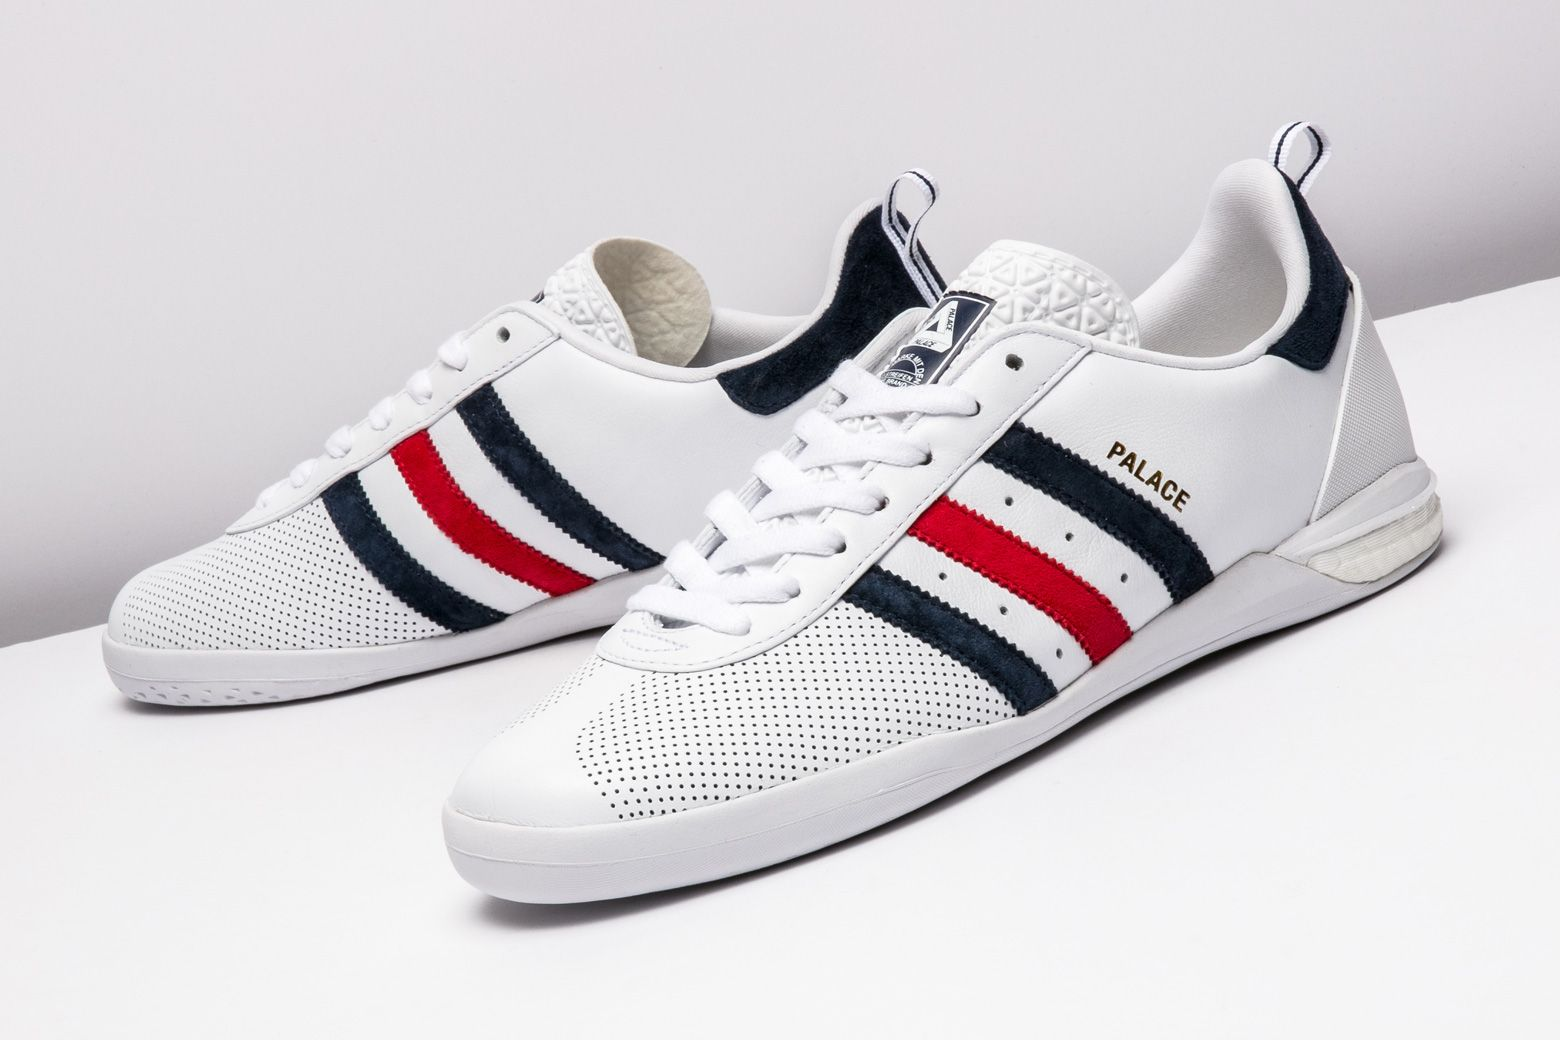 Pin By John Huizar On Great Cars Sport Shoes Fashion Best Basketball Shoes Adidas Men